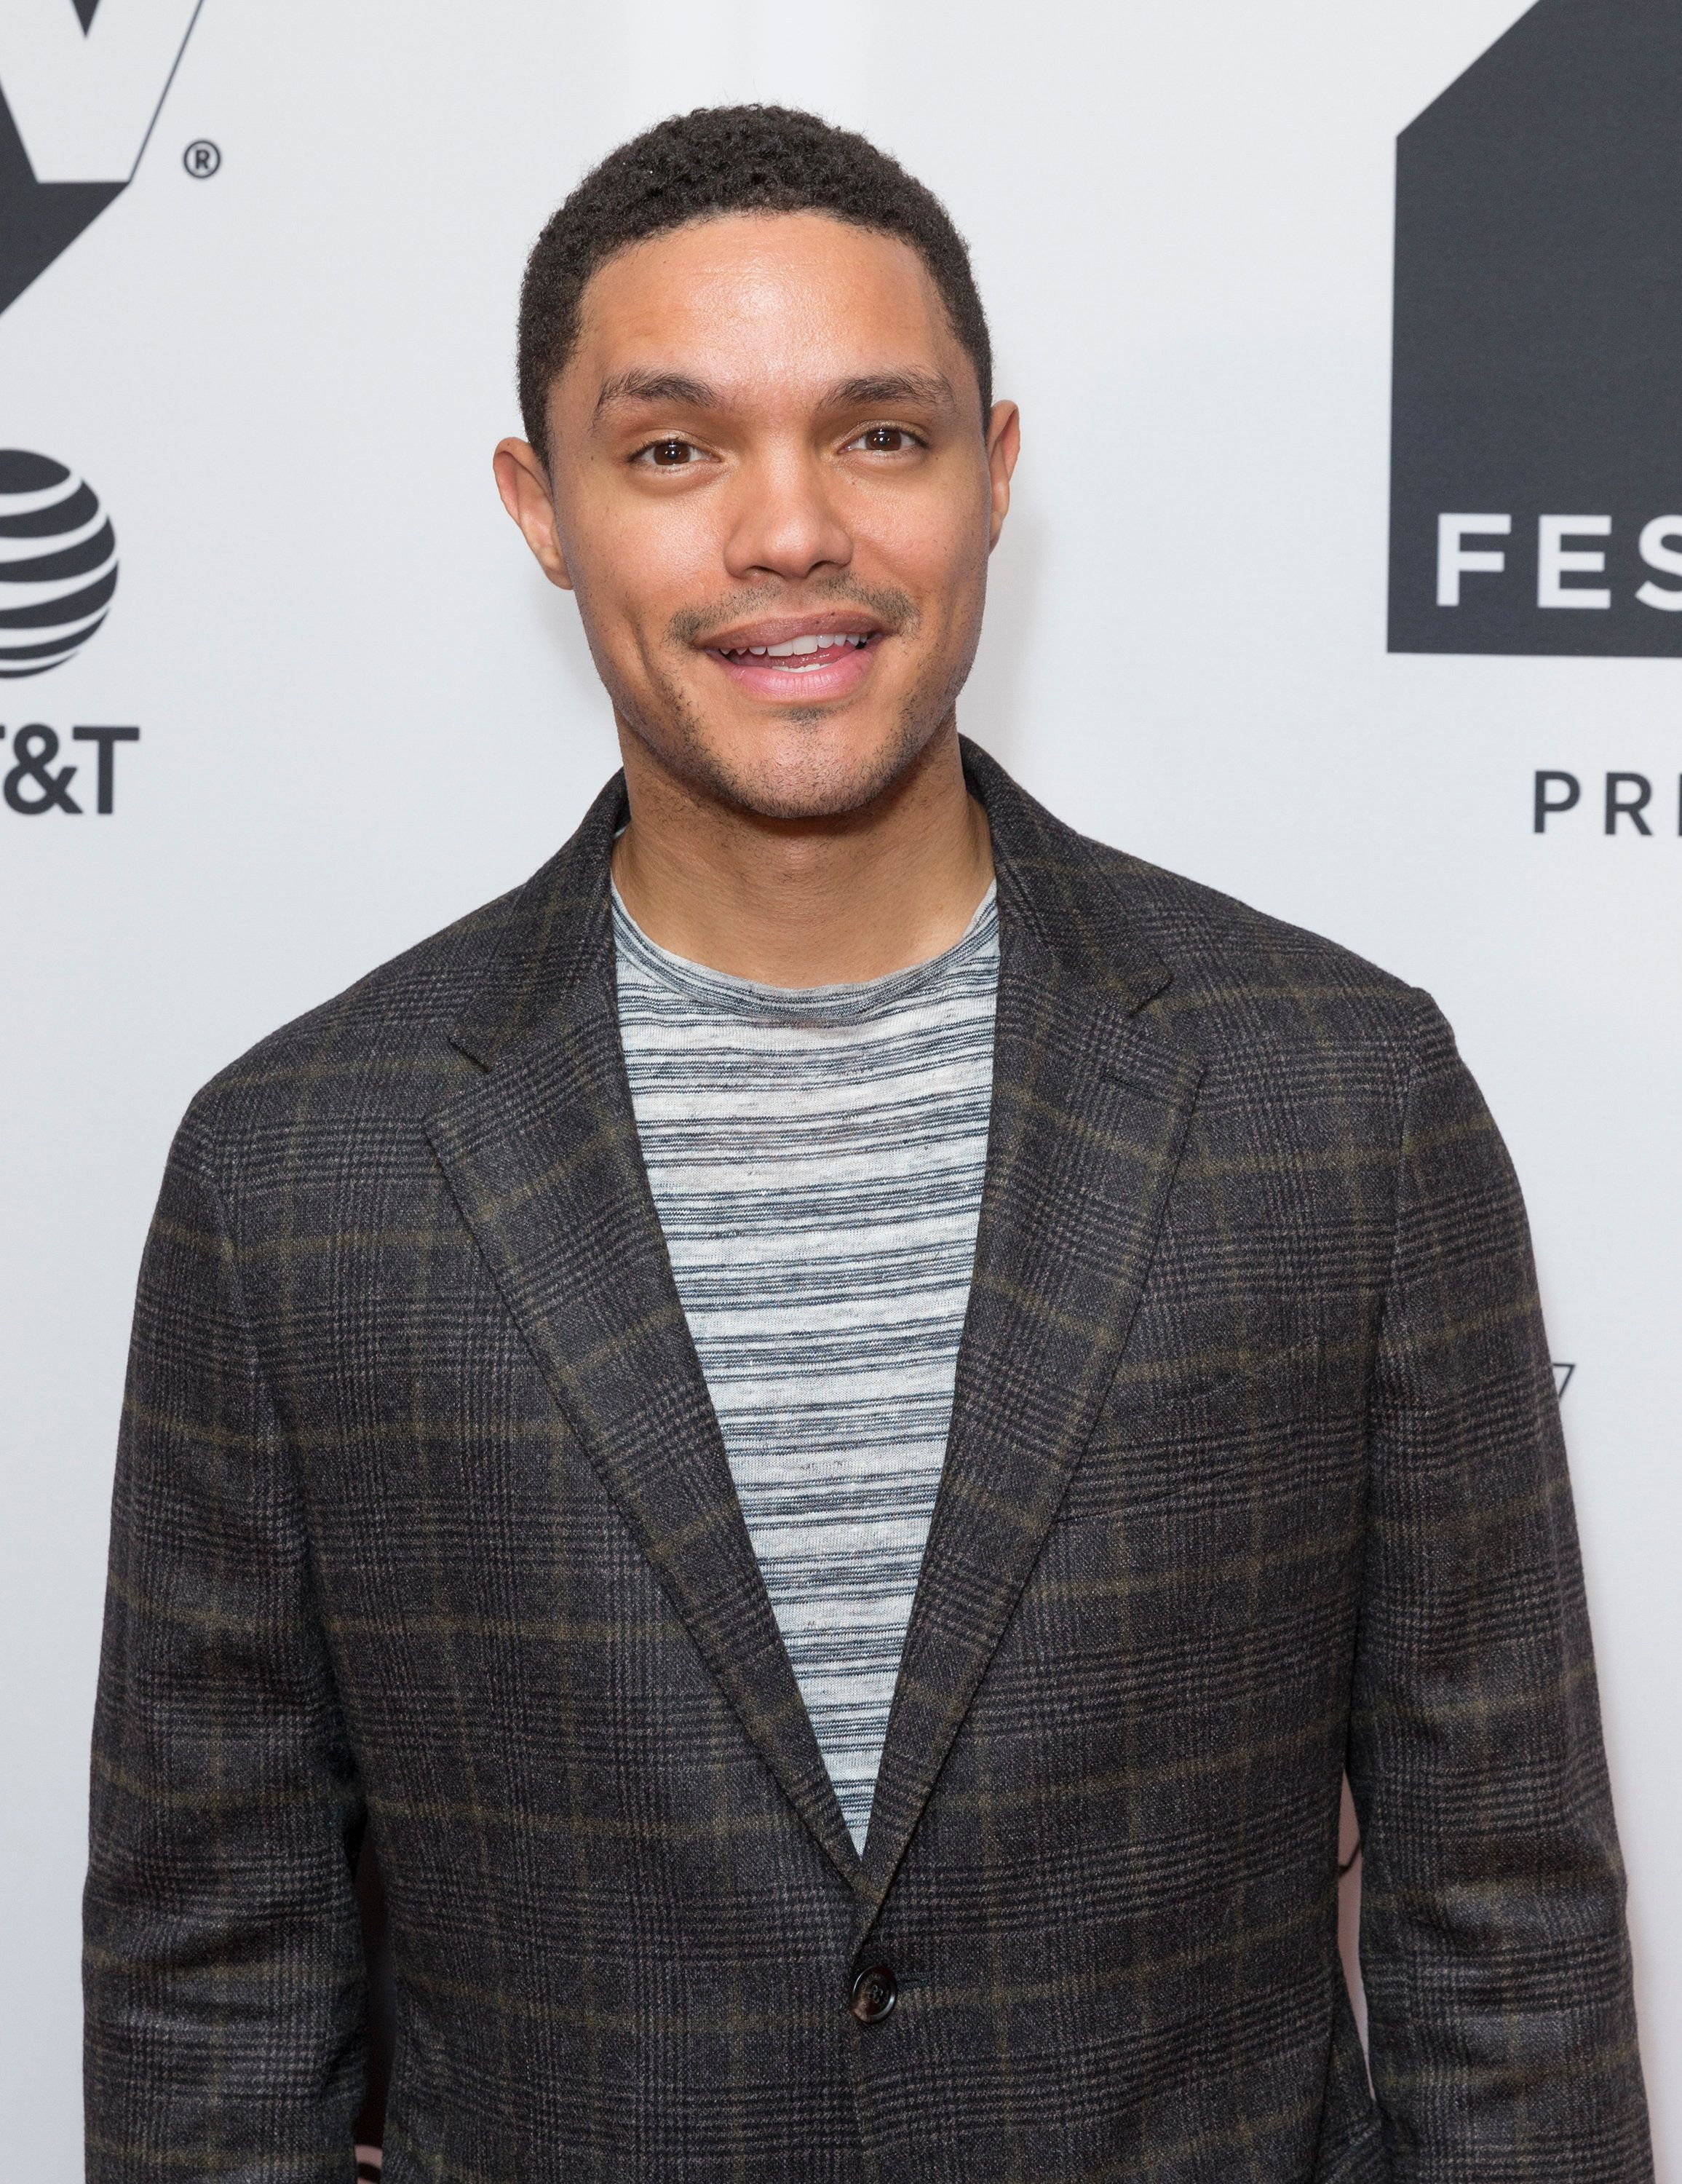 Trevor Noah attends Conversation with Trevor Noah & the writers of the Daily Show during Tribeca TV festival at Cin